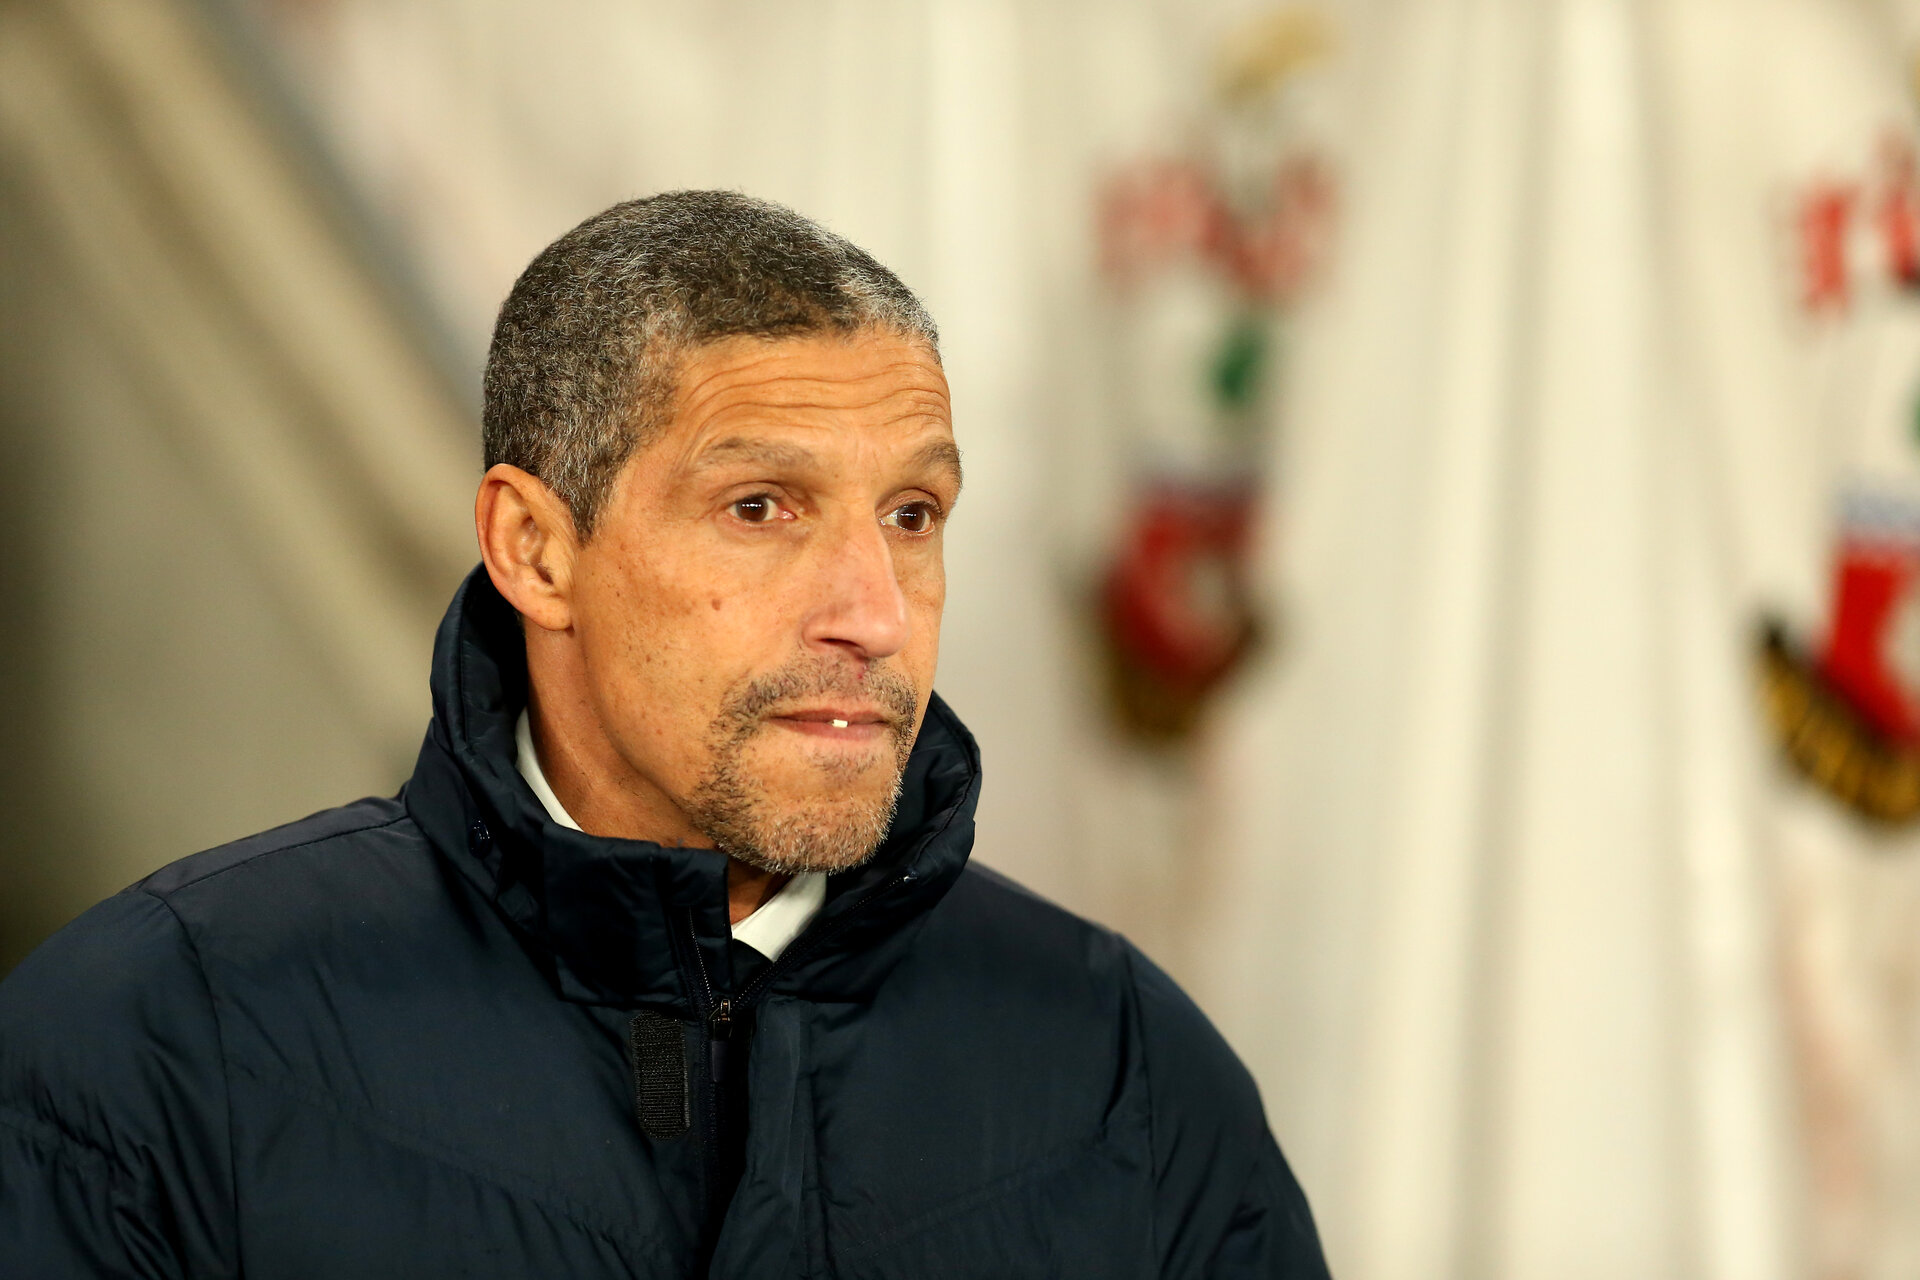 SOUTHAMPTON, ENGLAND - JANUARY 31: Chris Hughton during the Premier League match between Southampton and Brighton and Hove Albion at St Mary's Stadium on January 31, 2018 in Southampton, England. (Photo by Chris Moorhouse/Southampton FC via Getty Images)